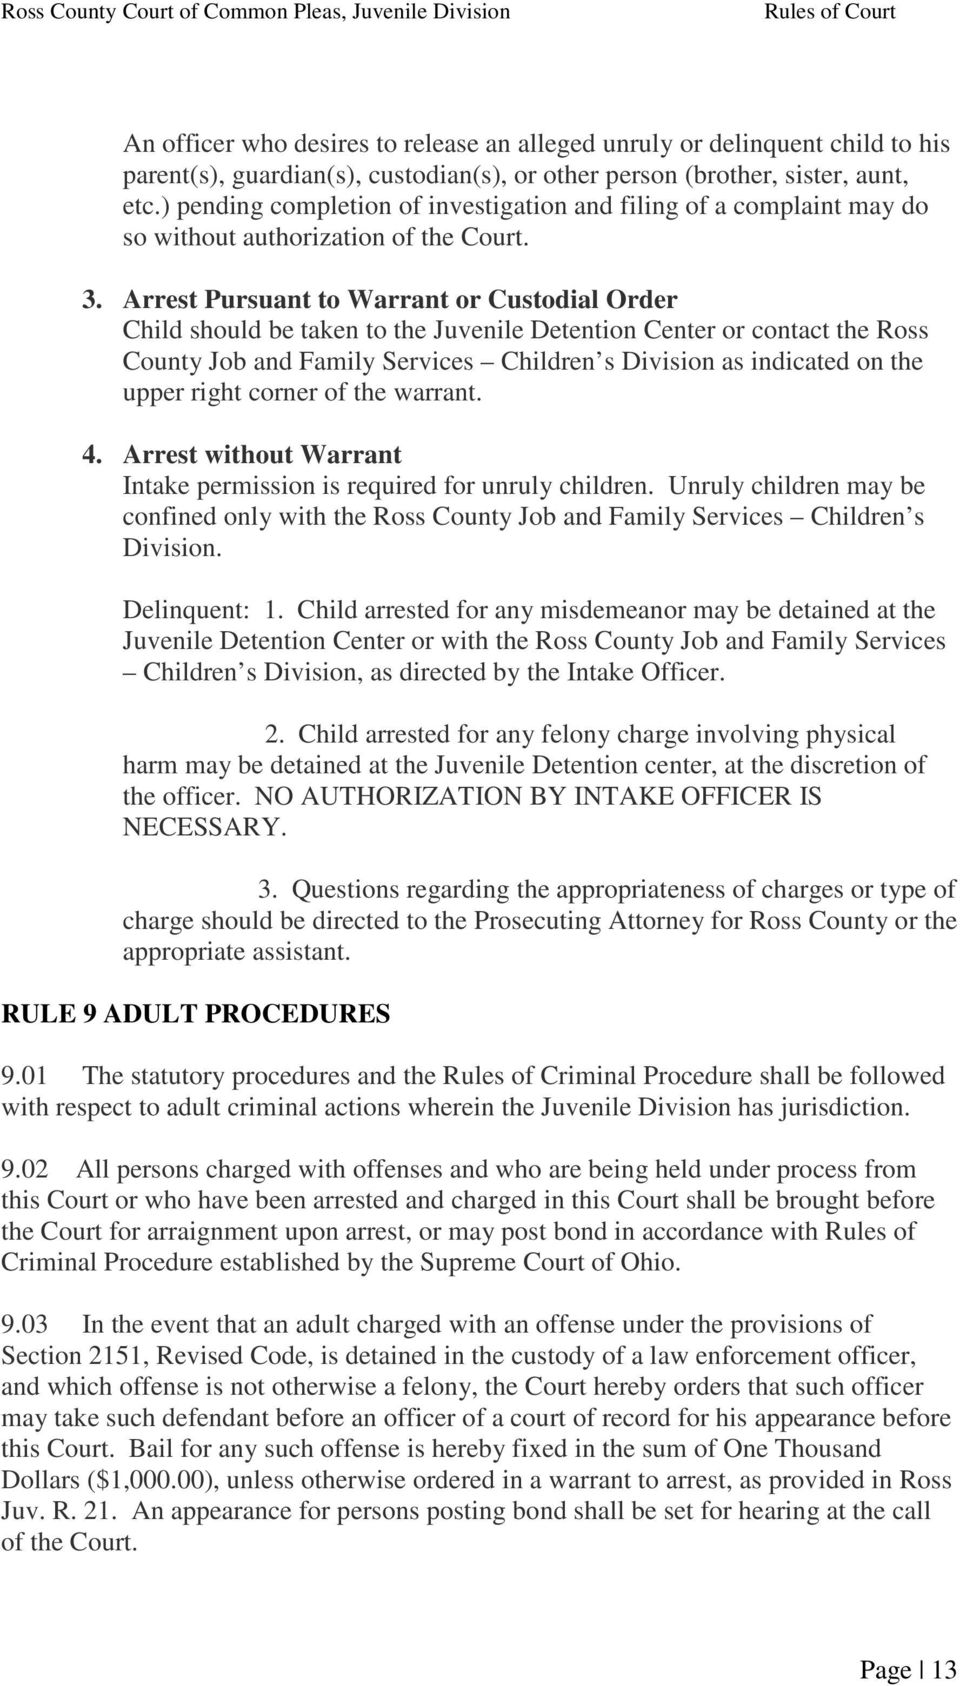 Arrest Pursuant to Warrant or Custodial Order Child should be taken to the Juvenile Detention Center or contact the Ross County Job and Family Services Children s Division as indicated on the upper